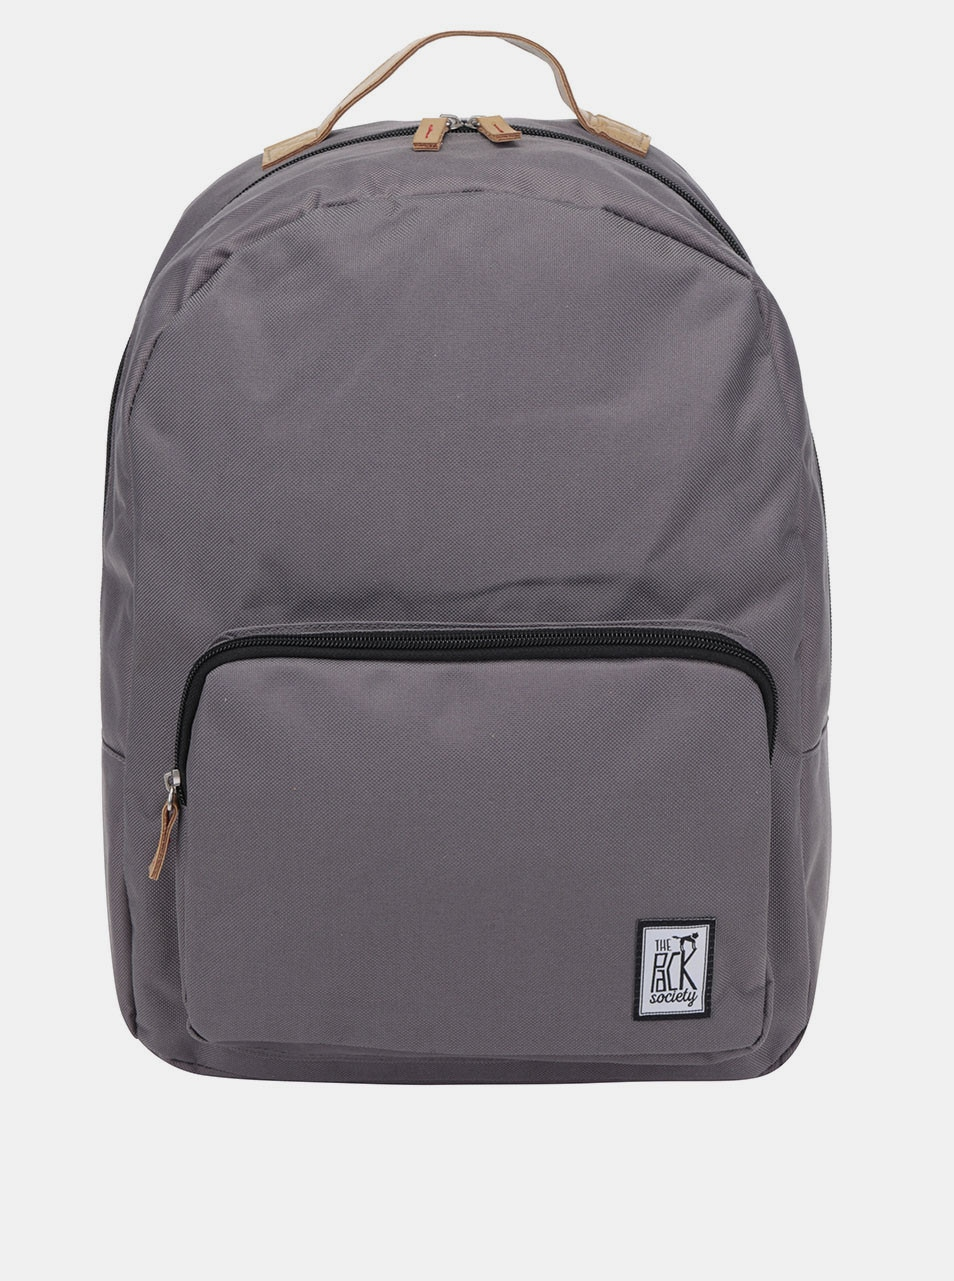 Grey Backpack The Pack Society 18 l